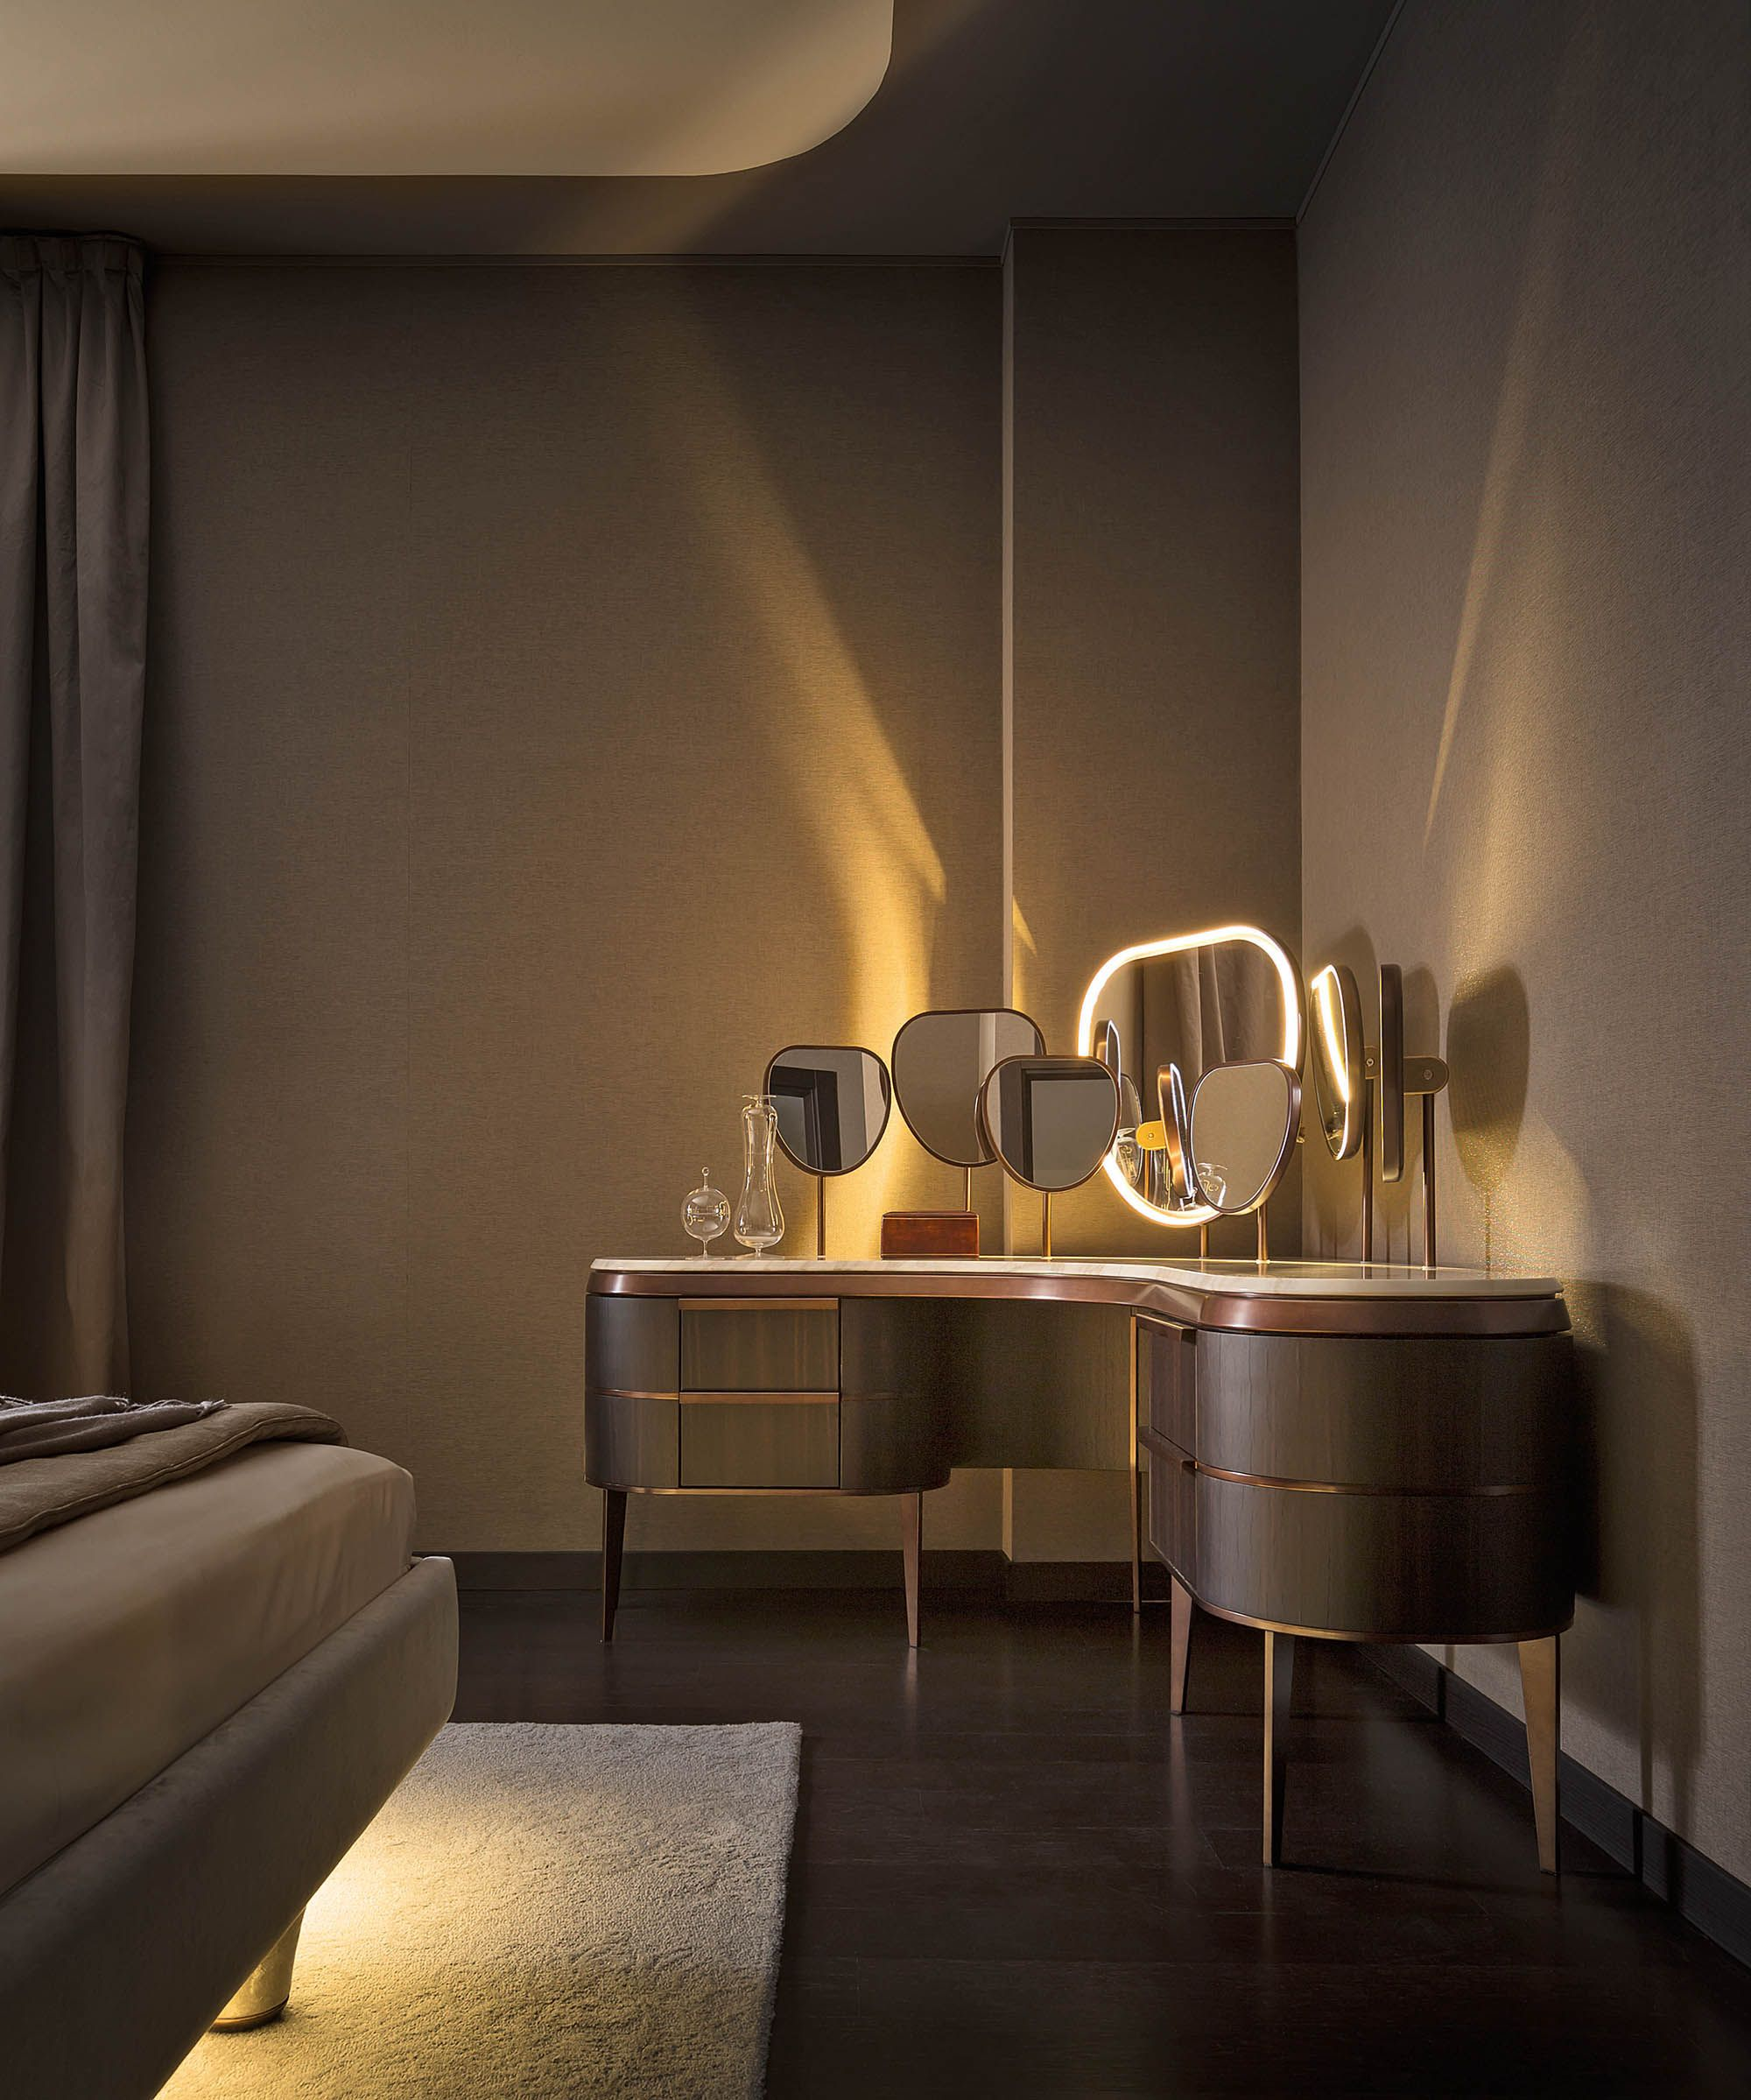 Bedroom Furniture Not Matching Bedroom Interior Quotes Bedroom Bed Back Wall Bedroom Design Board: An Enchanting Lounge Area And Relaxing Sleeping Quarters